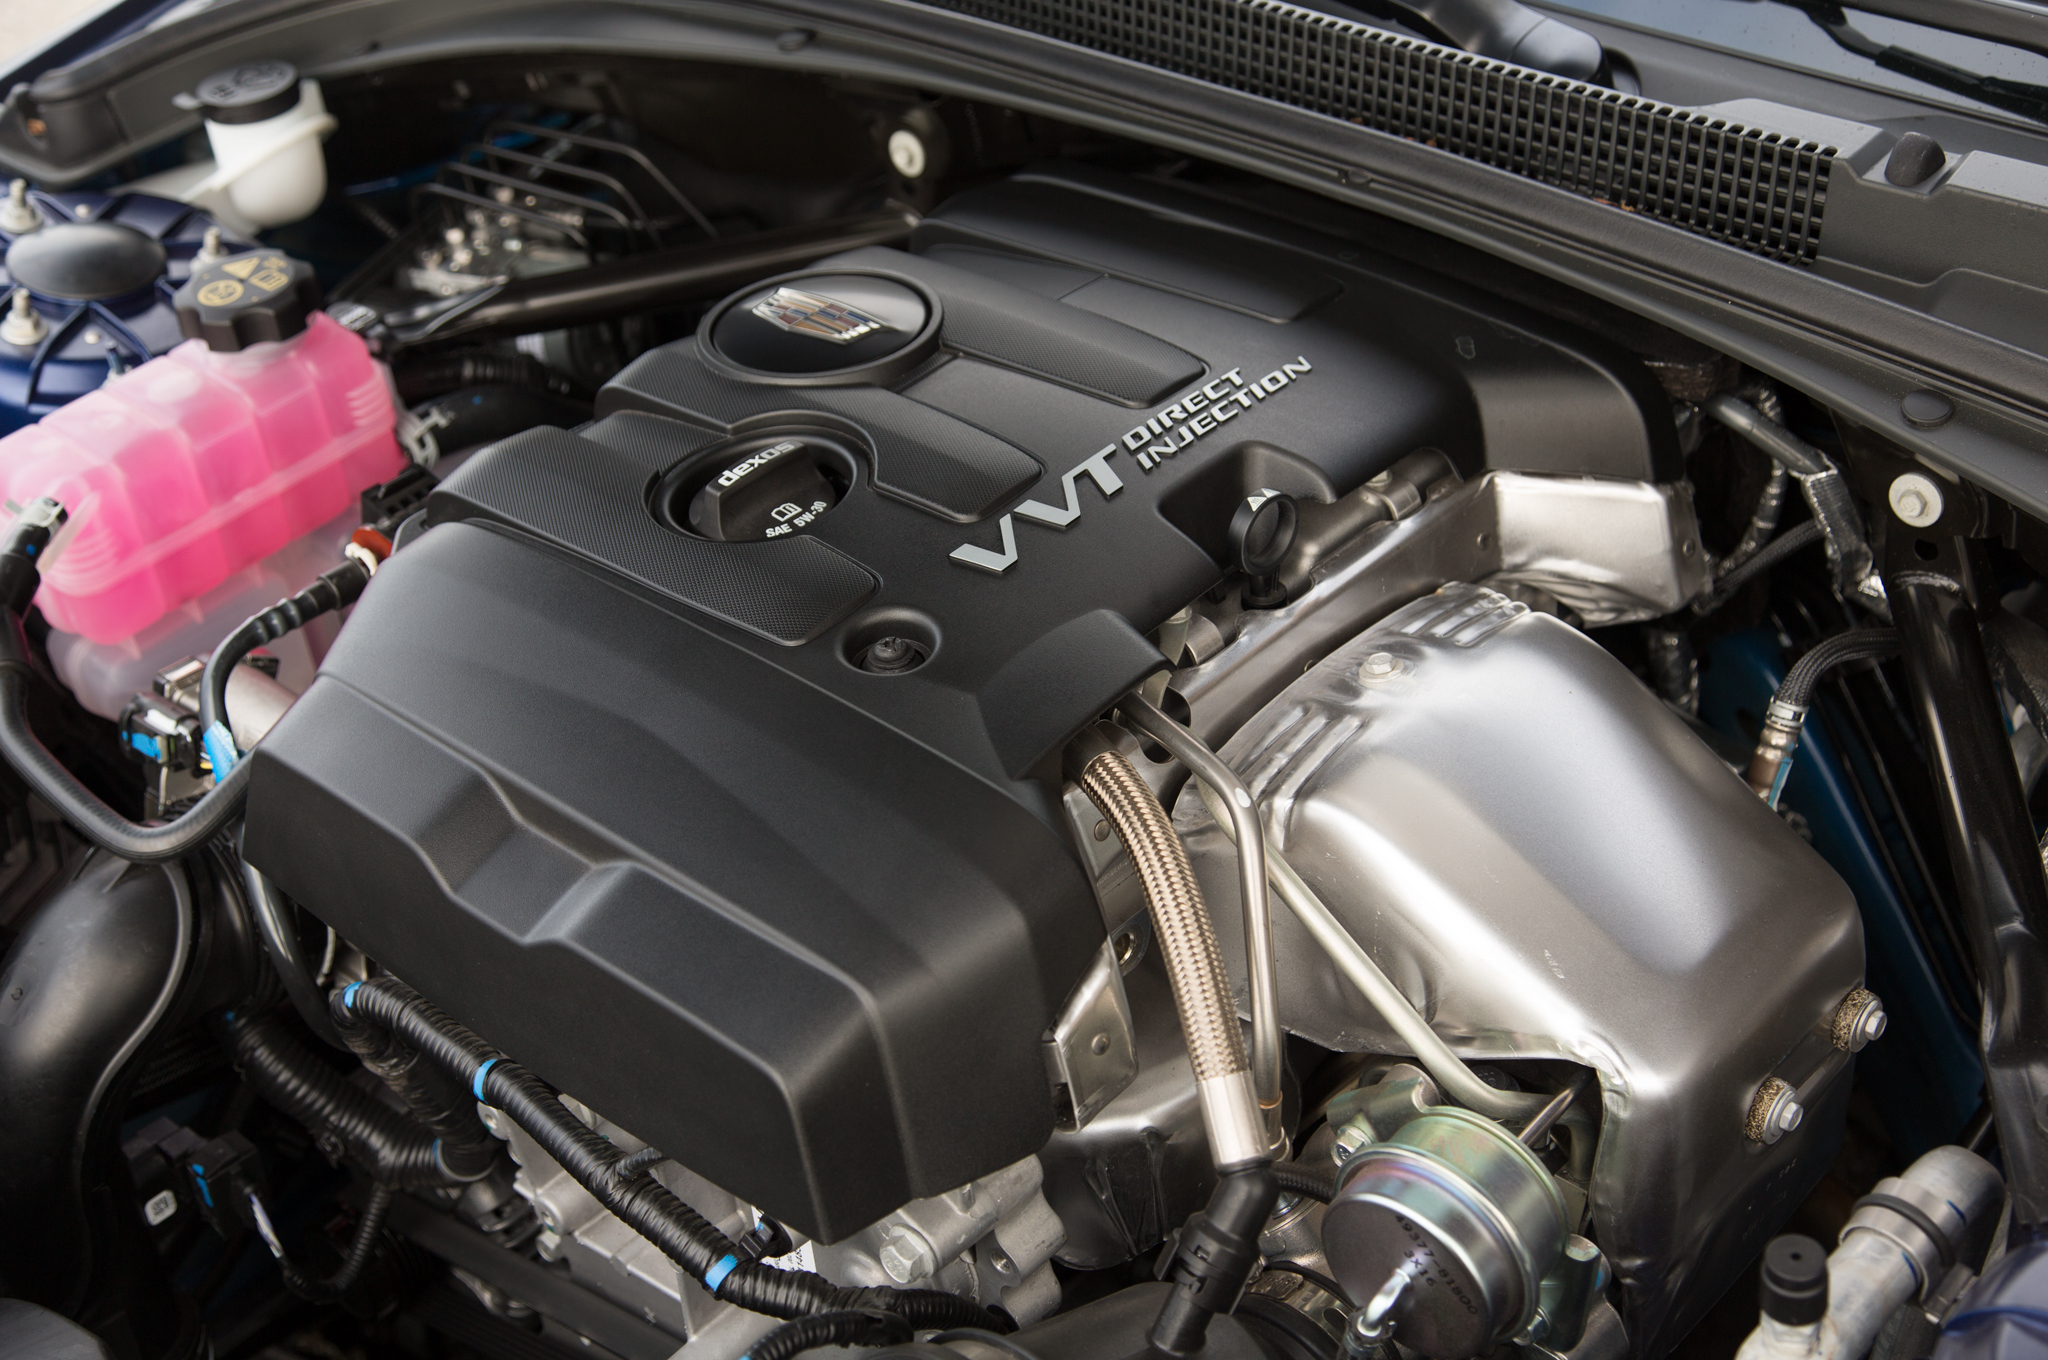 2015 Cadillac Ats Coupe Engine View (Photo 13 of 21)